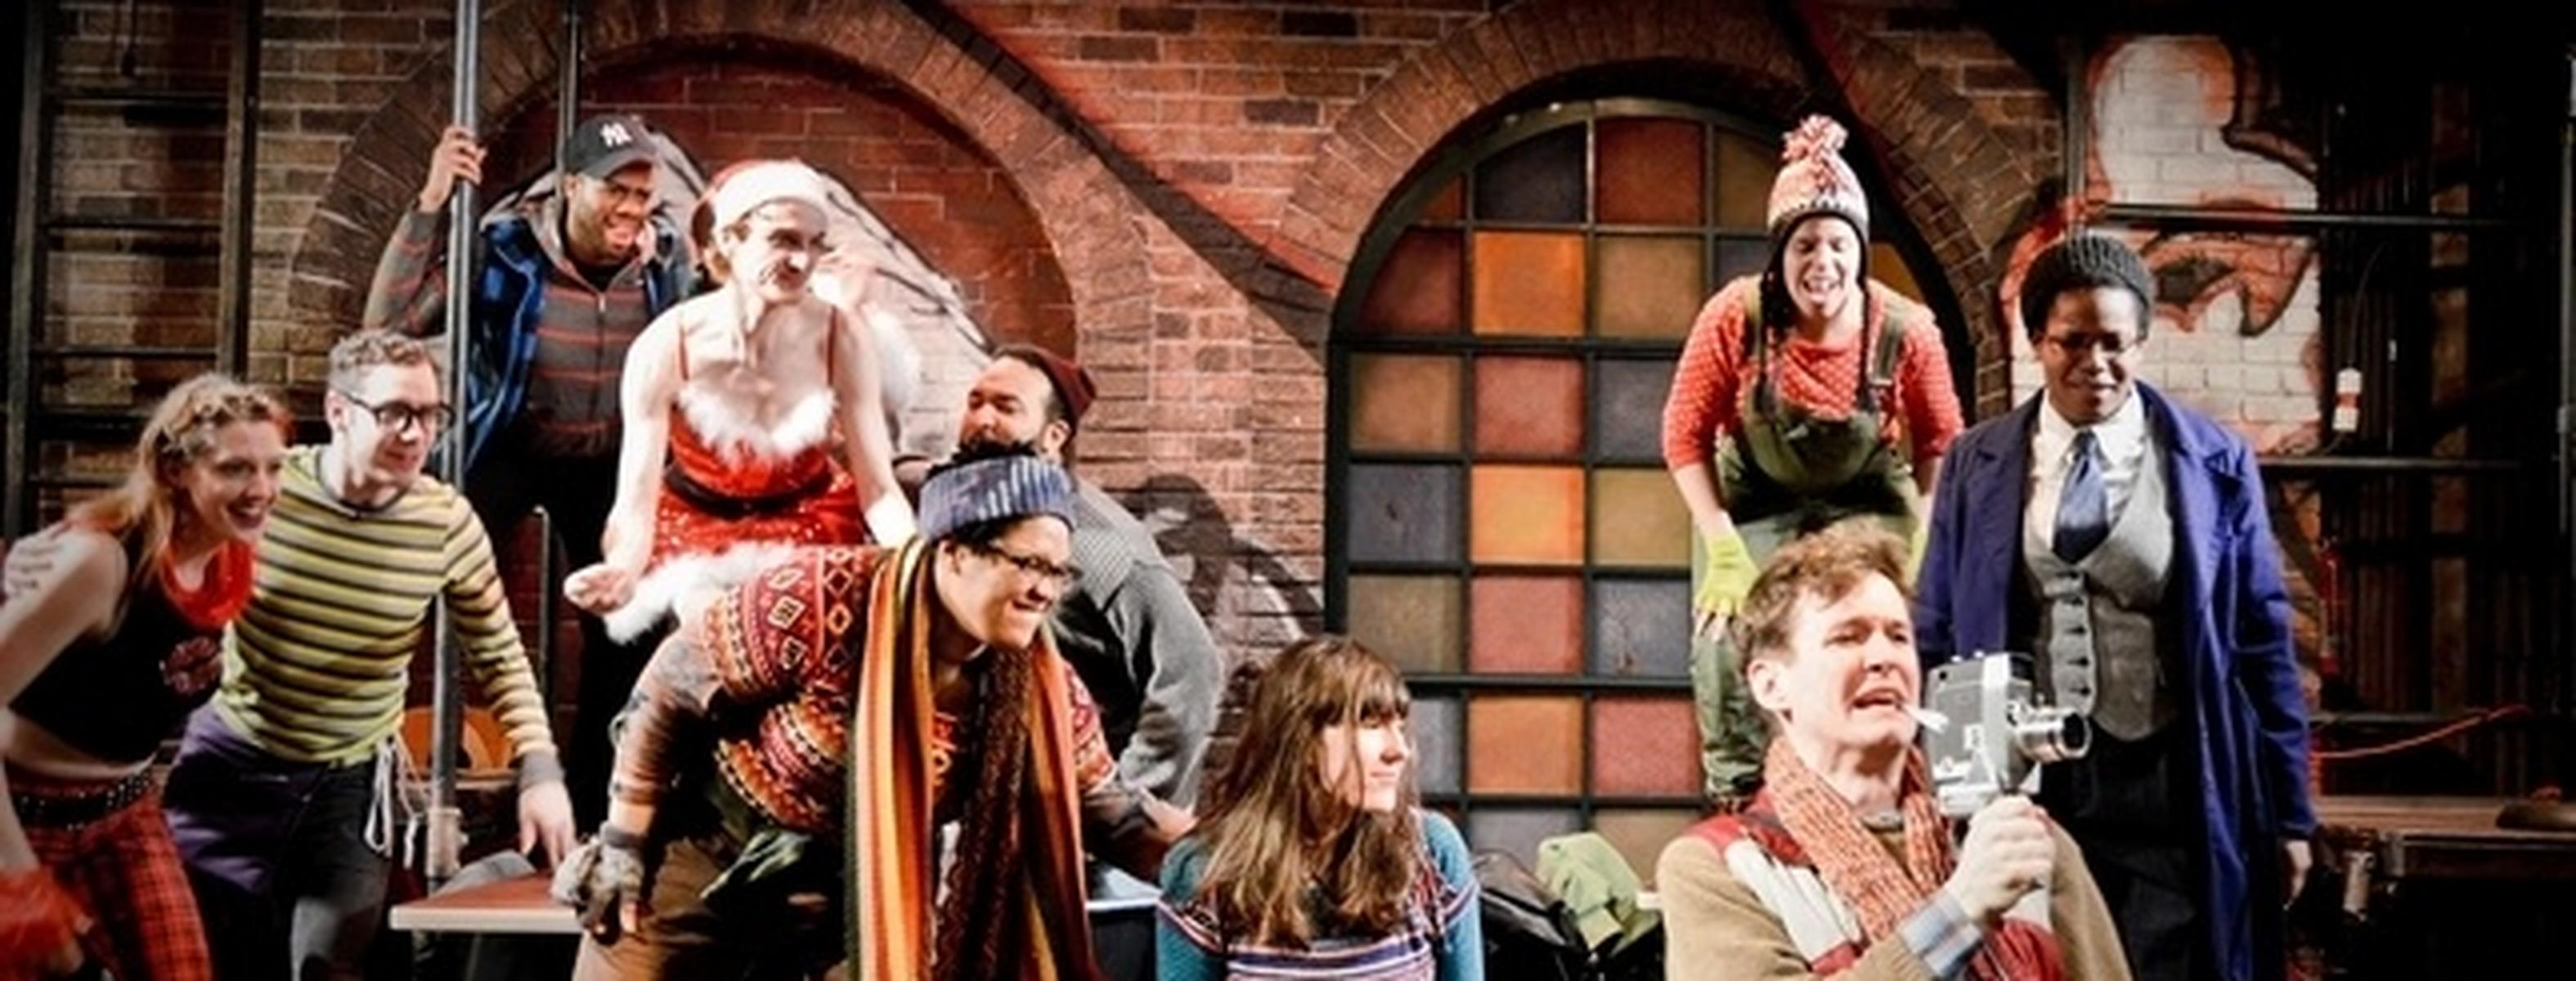 Now Casting Non Equity Tour Of Rent Has An Open Call For Singers And Dancers 3 More Gigs